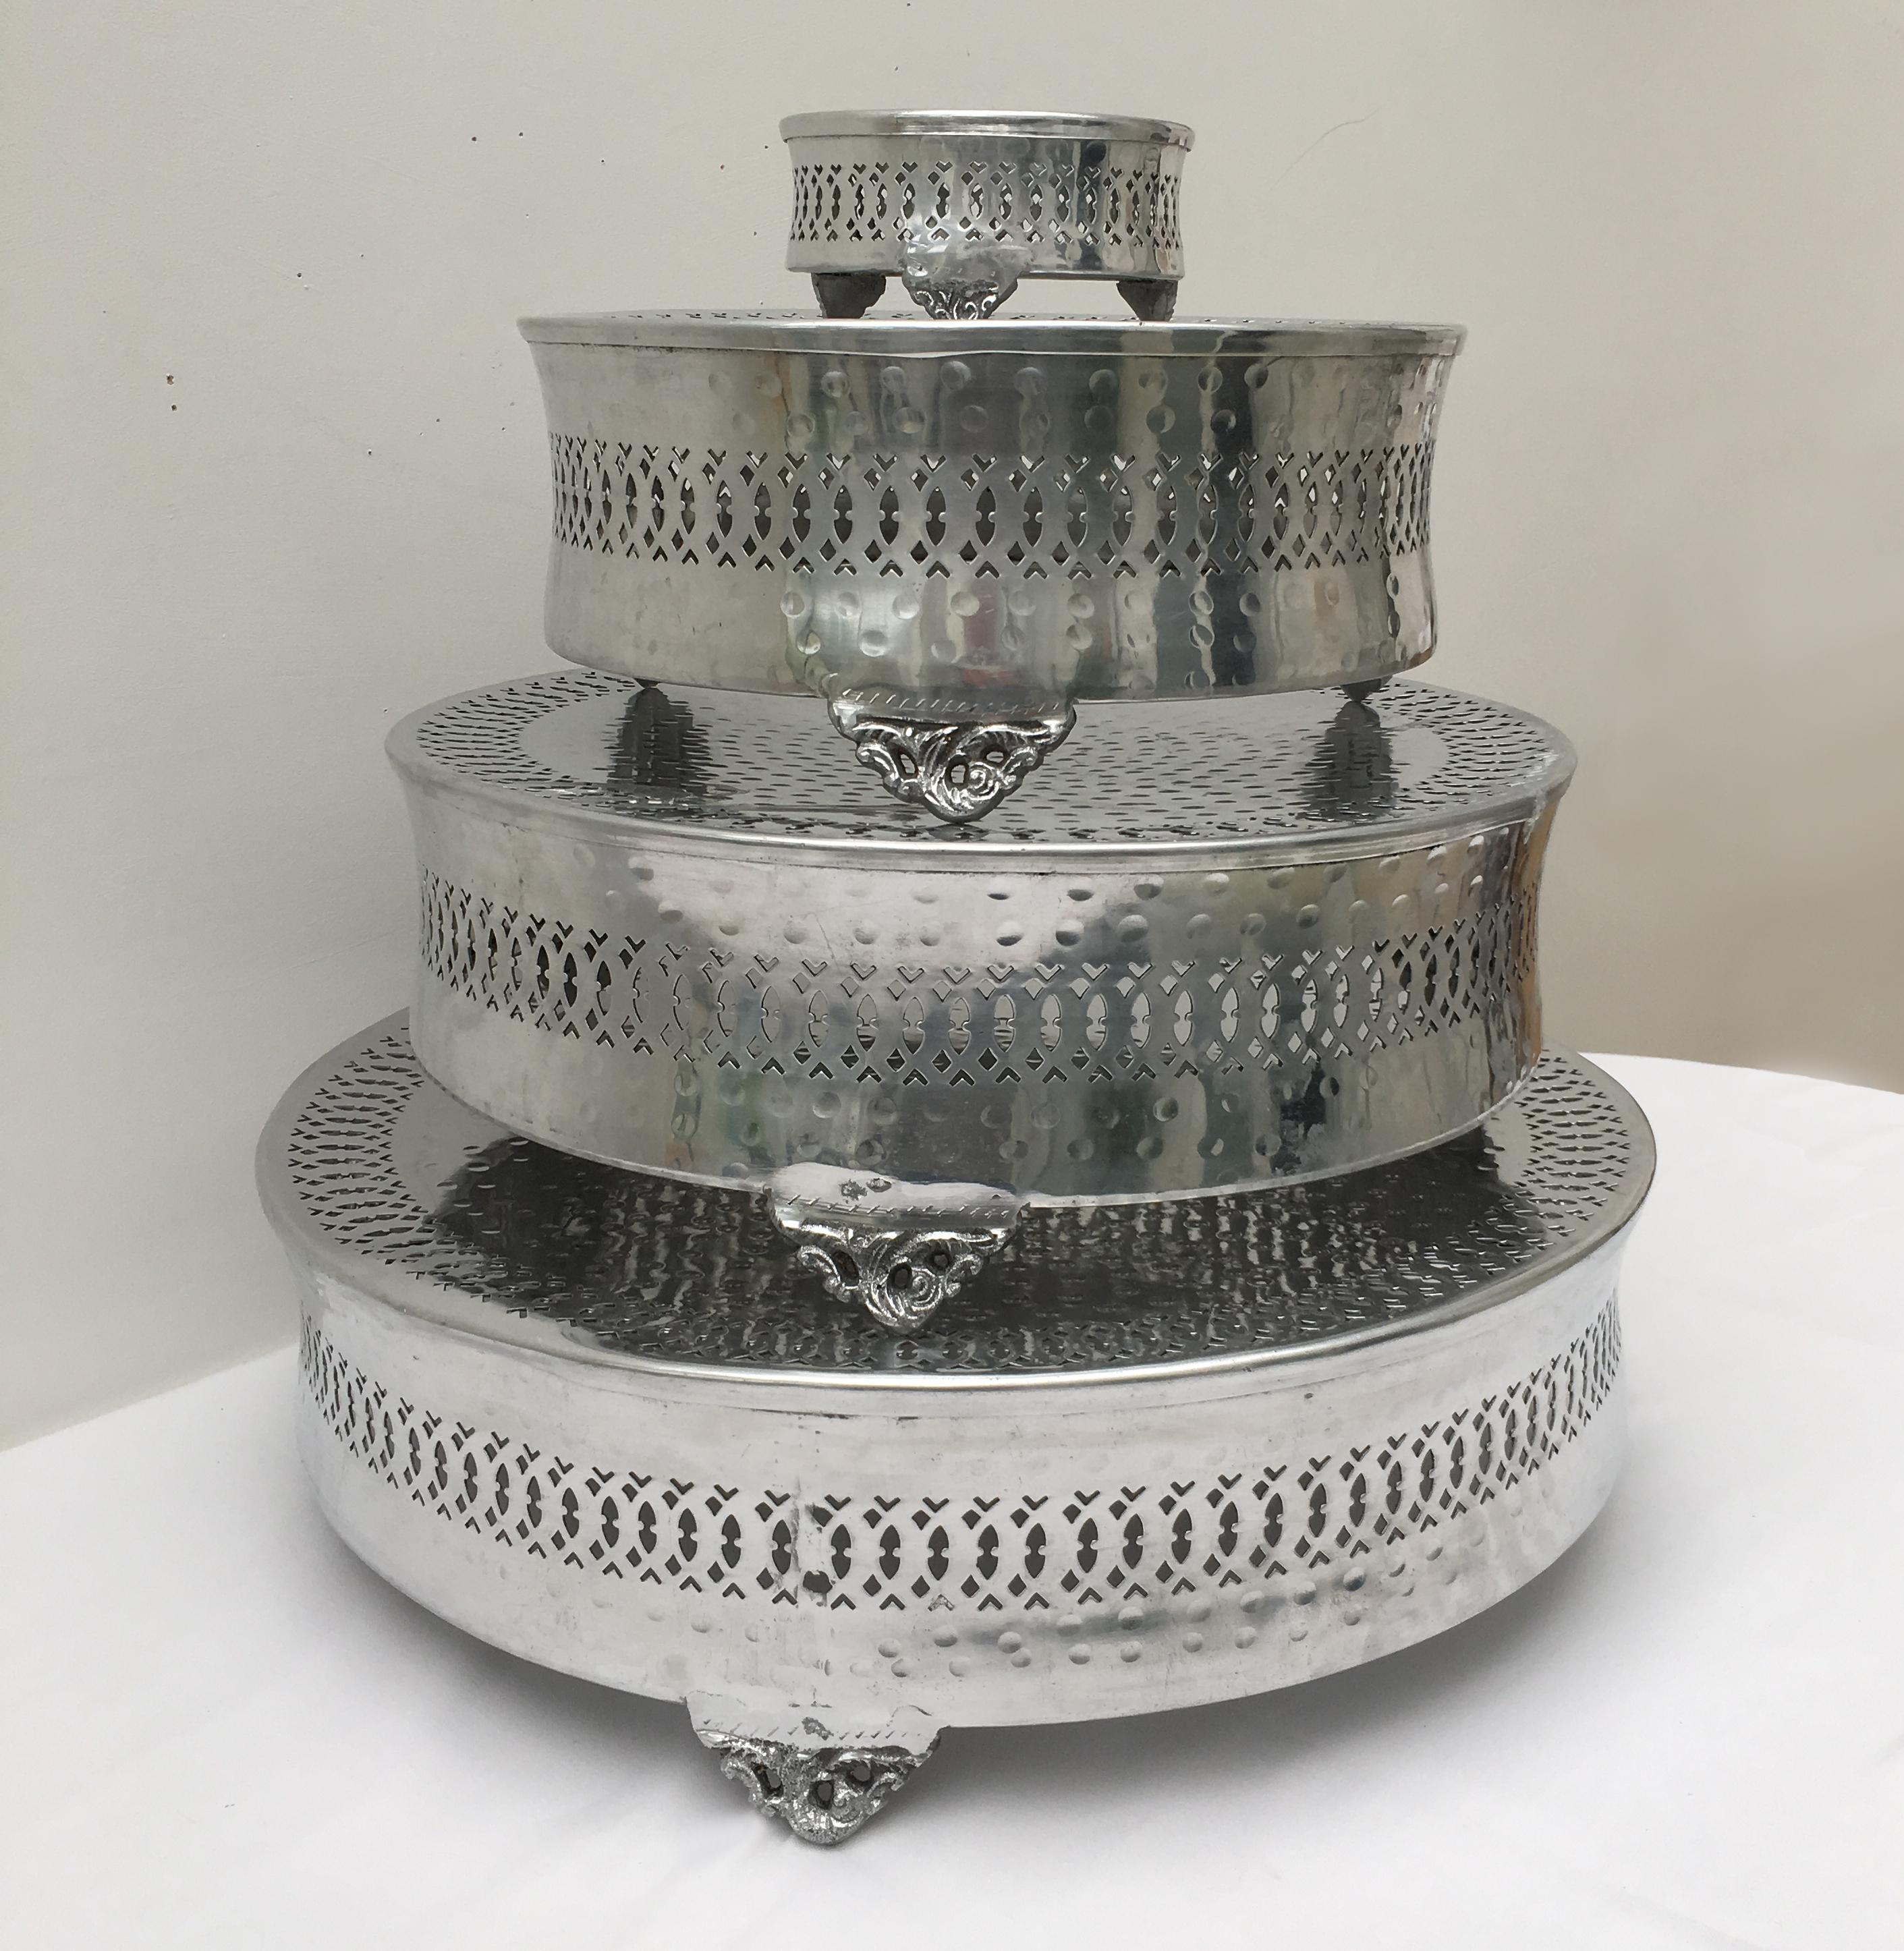 Modern Silver Cake Stands to hire